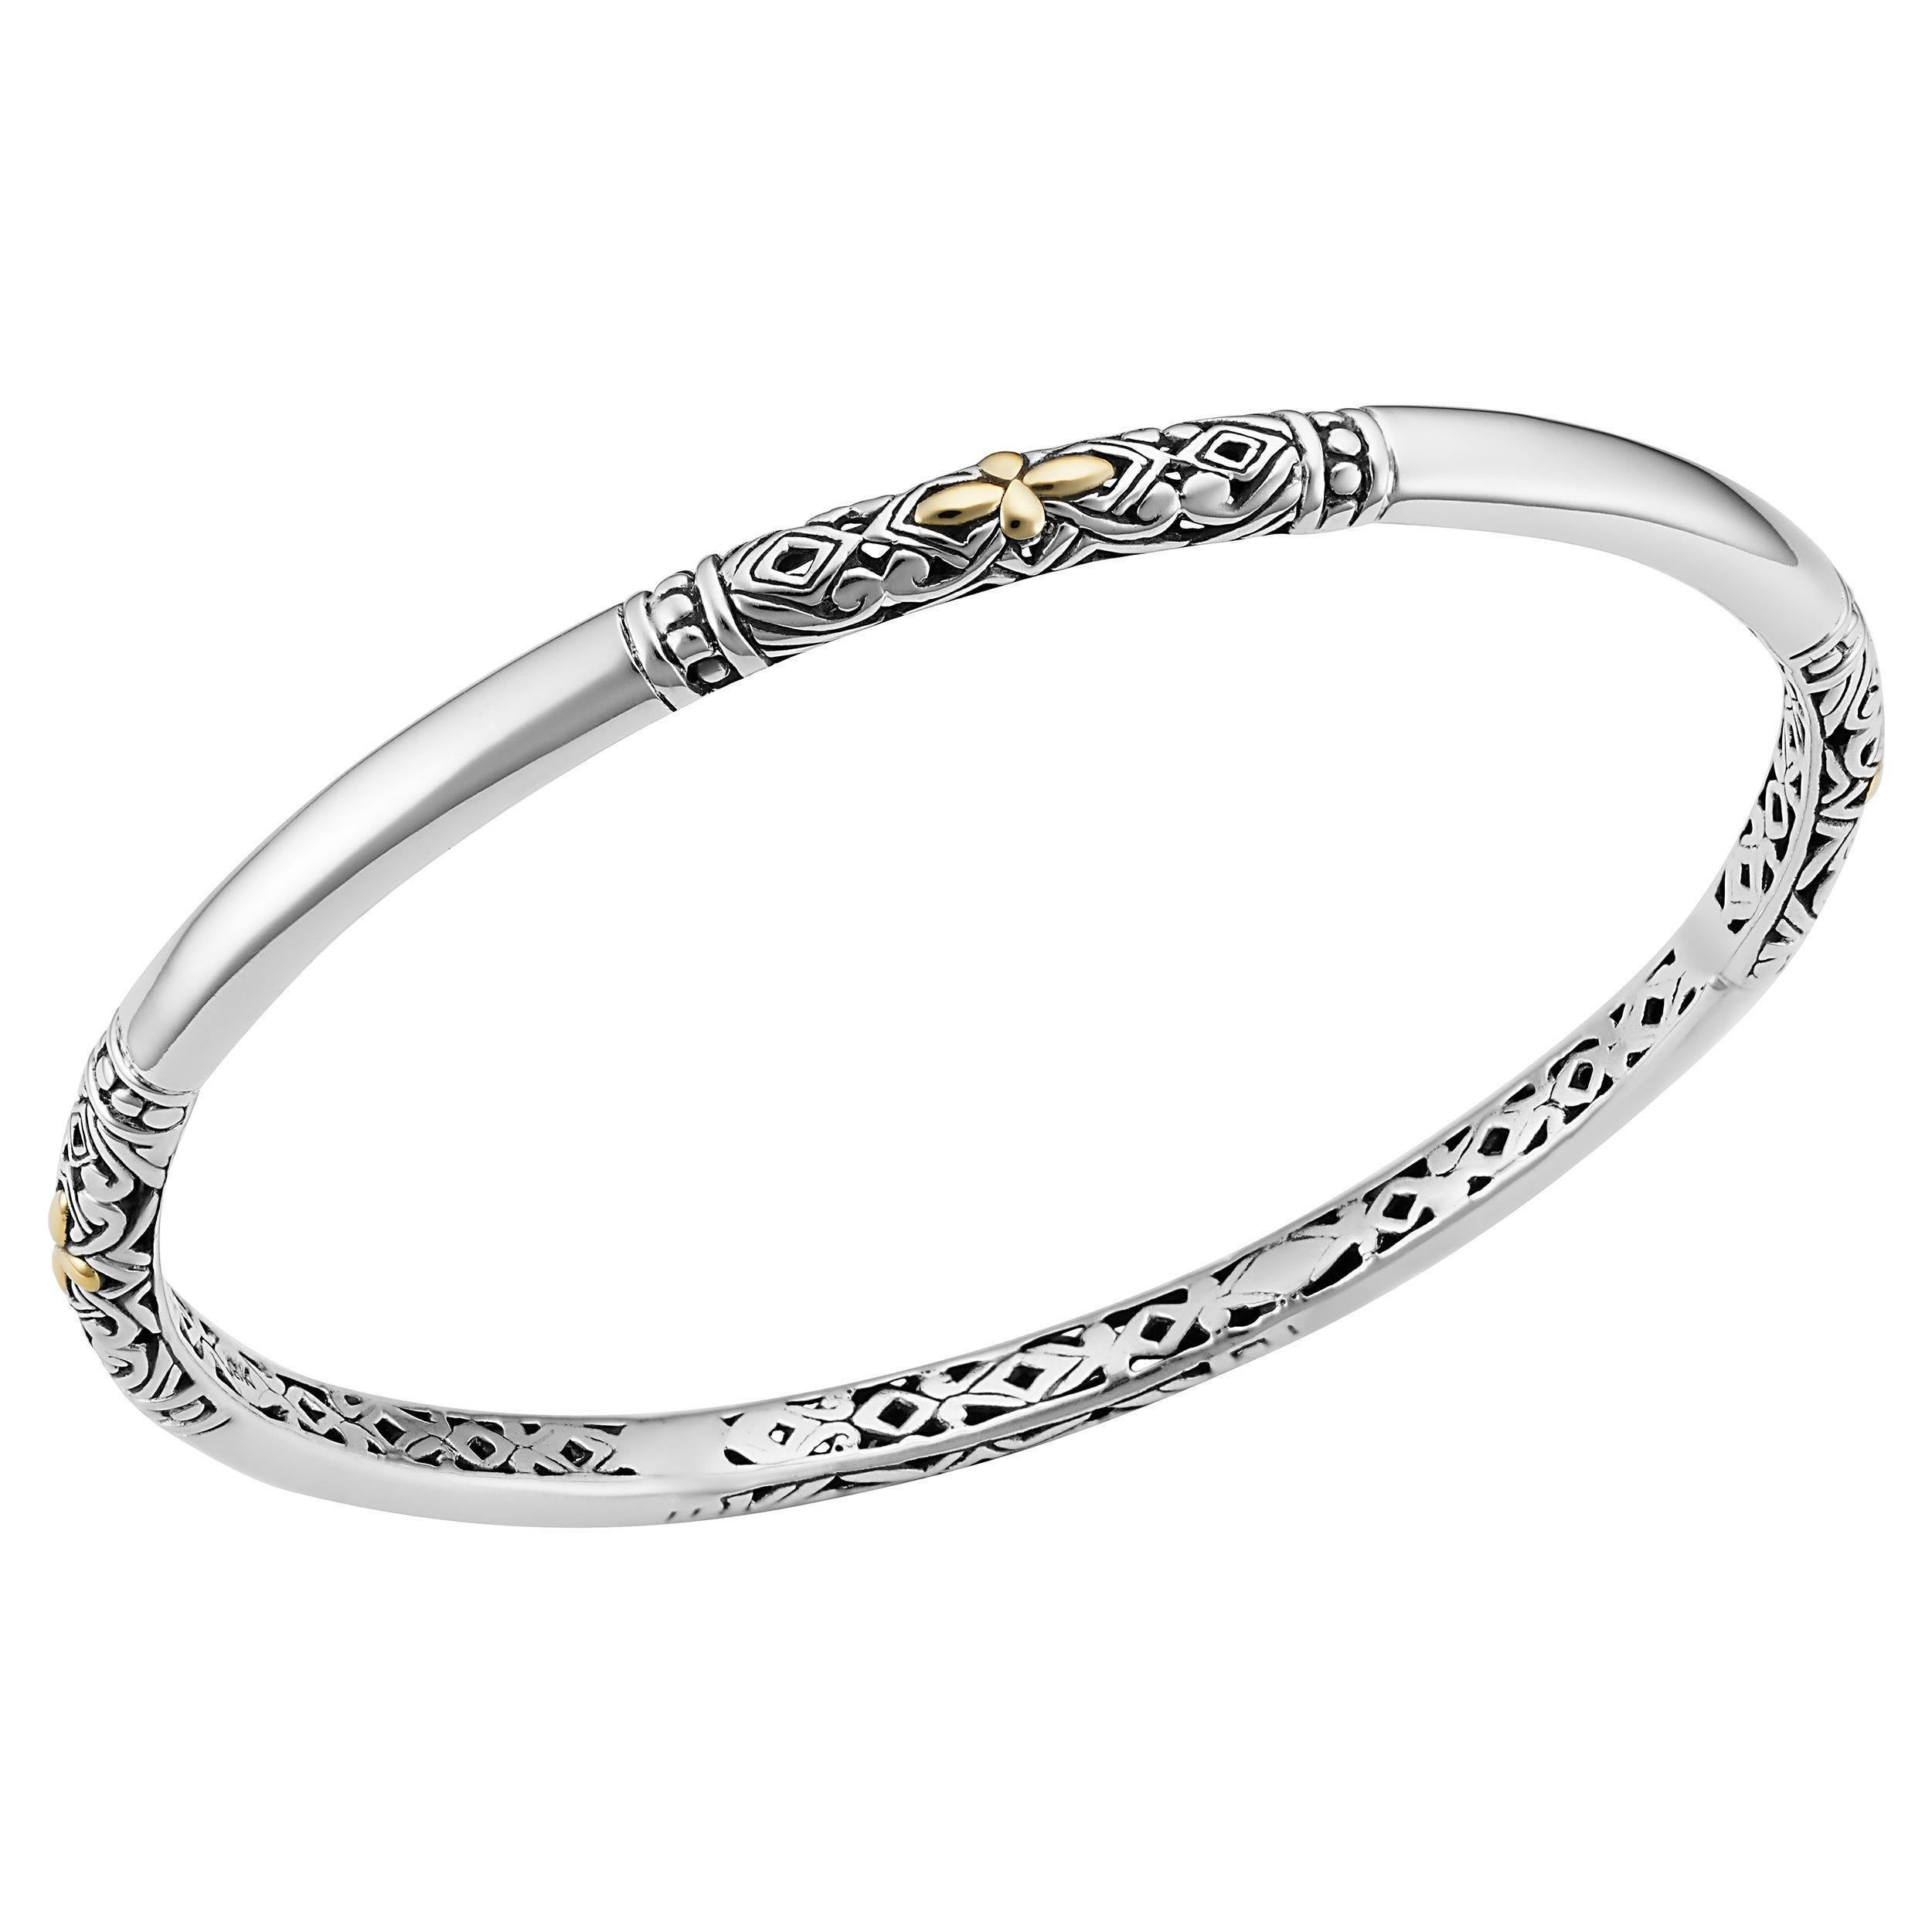 bracelet available in infinity symbol engravable center inch a gold bangles silver band of the bangle outside features pin engraving an wide sterling